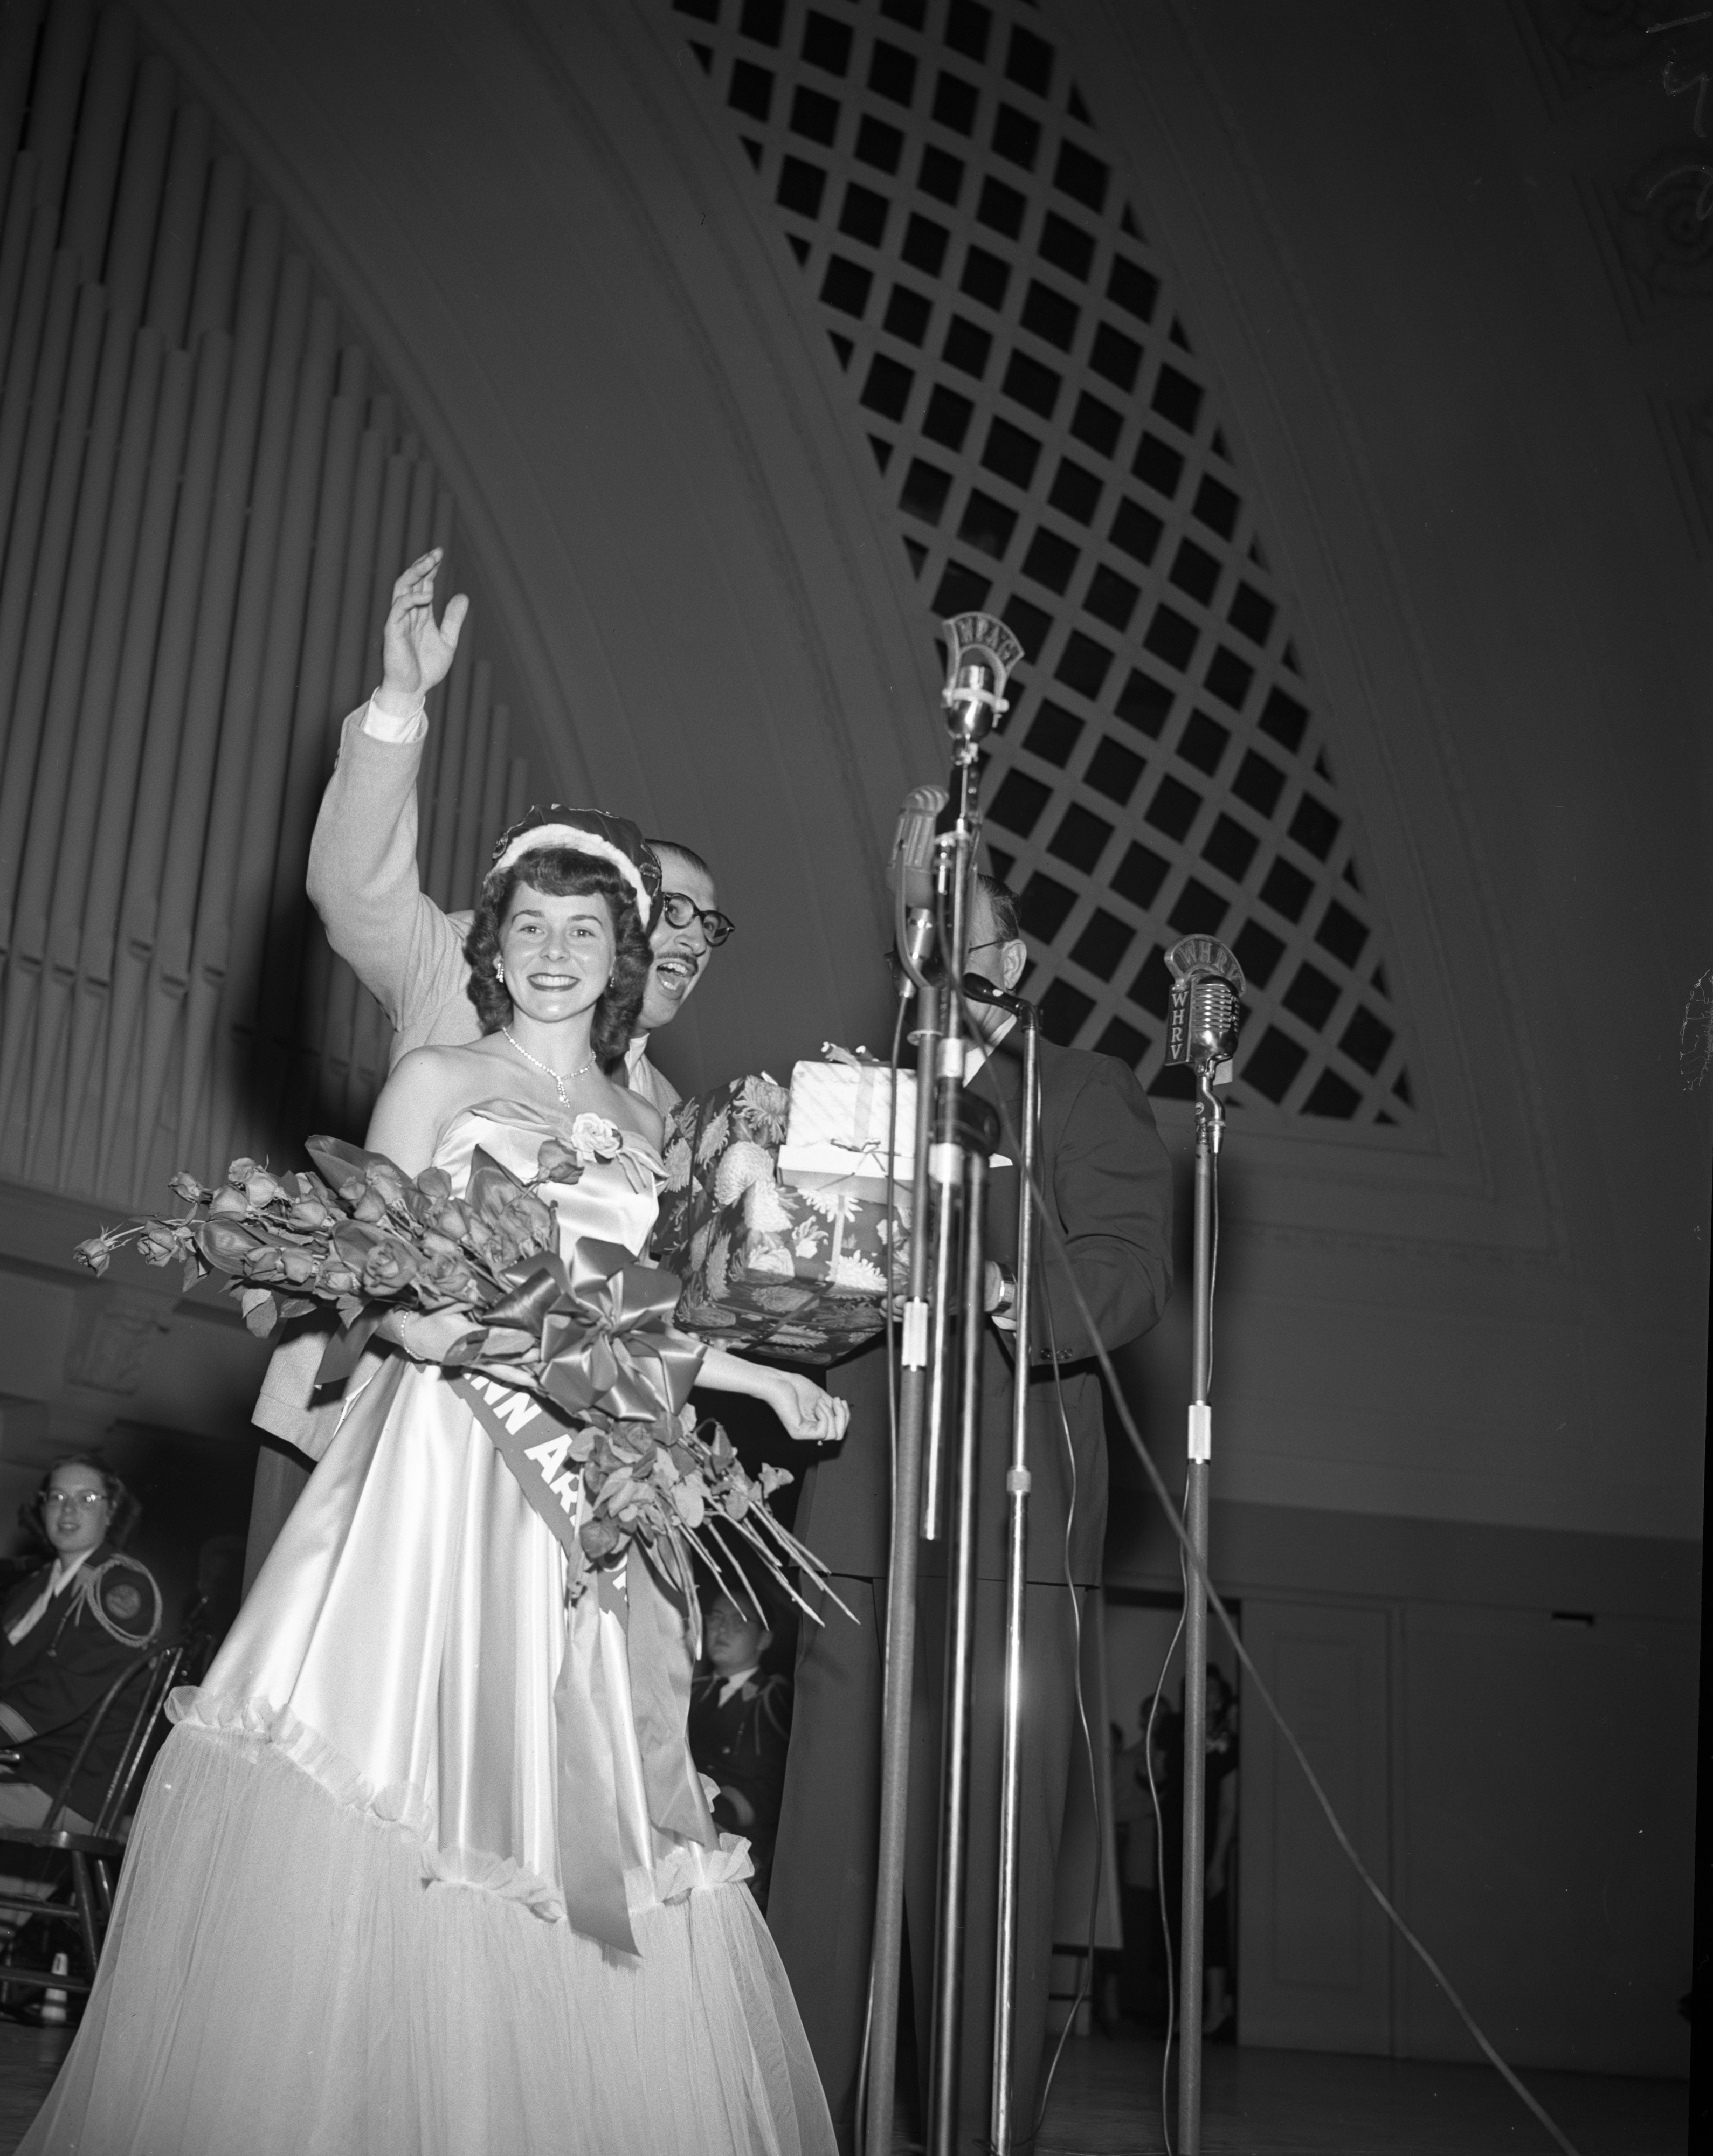 Marion J. Weinmann, queen of the 30th annual Community Chest Campaign, October 1950 image